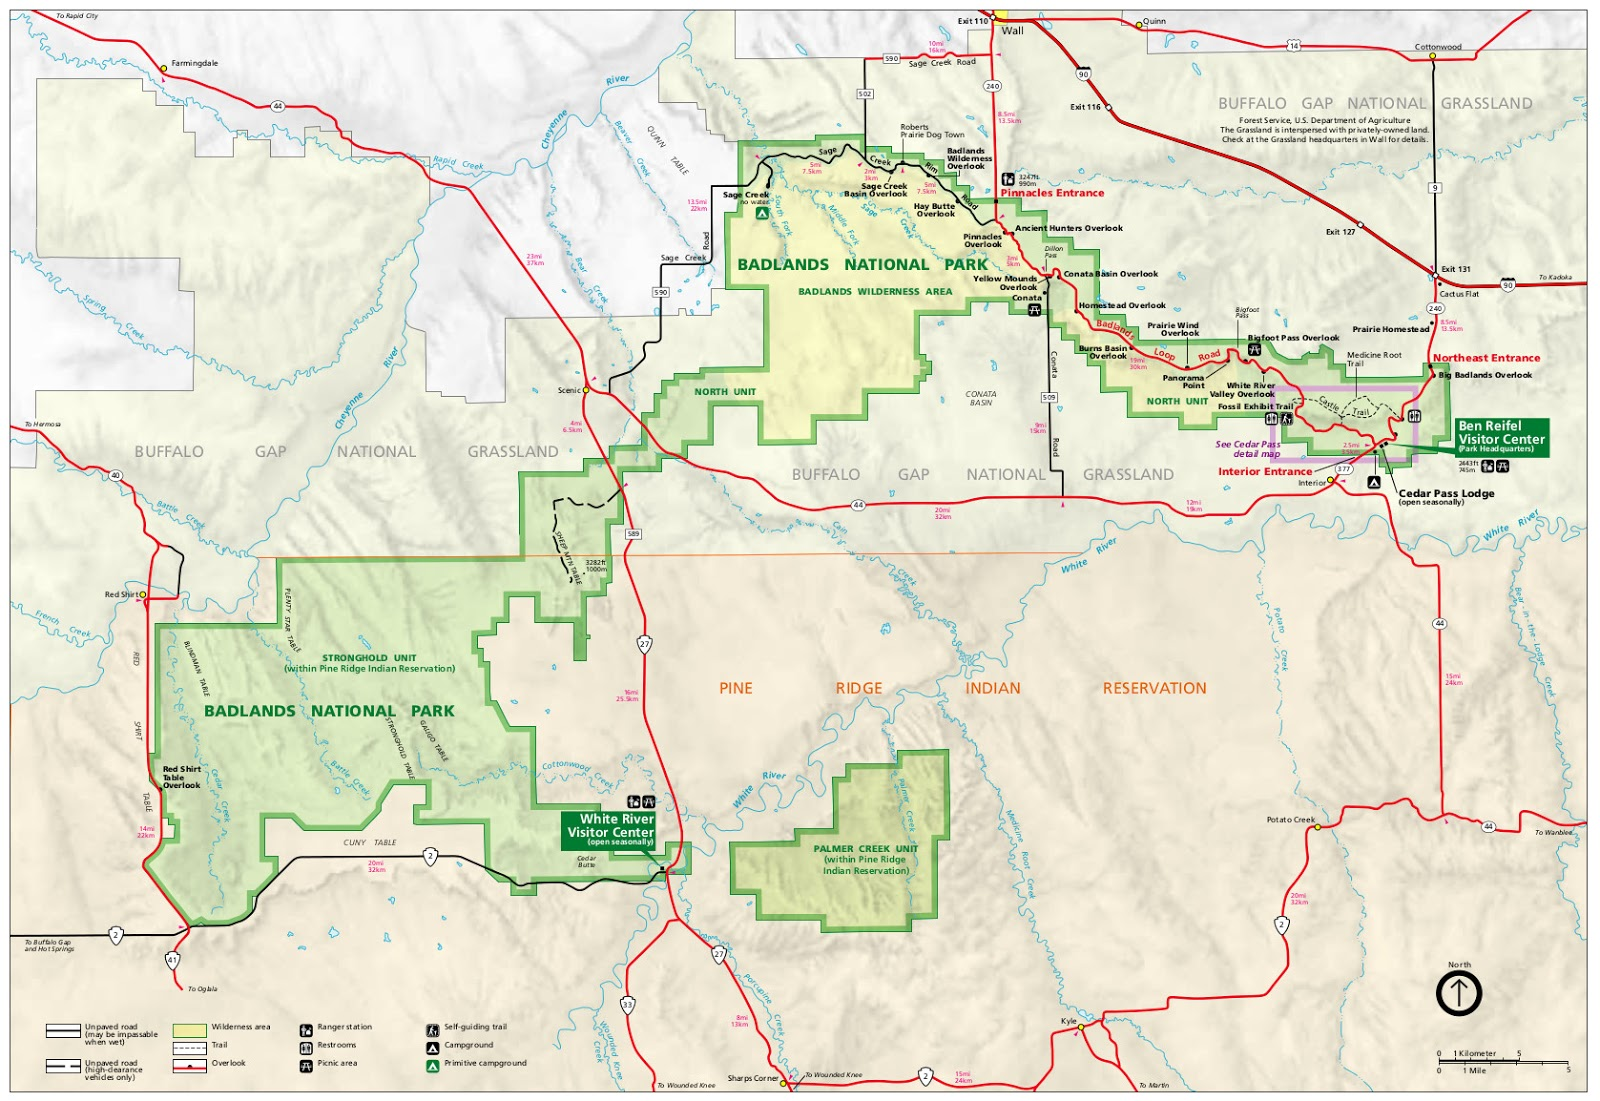 Us National Grasslands Map Globalinterco - Park and forest land us map